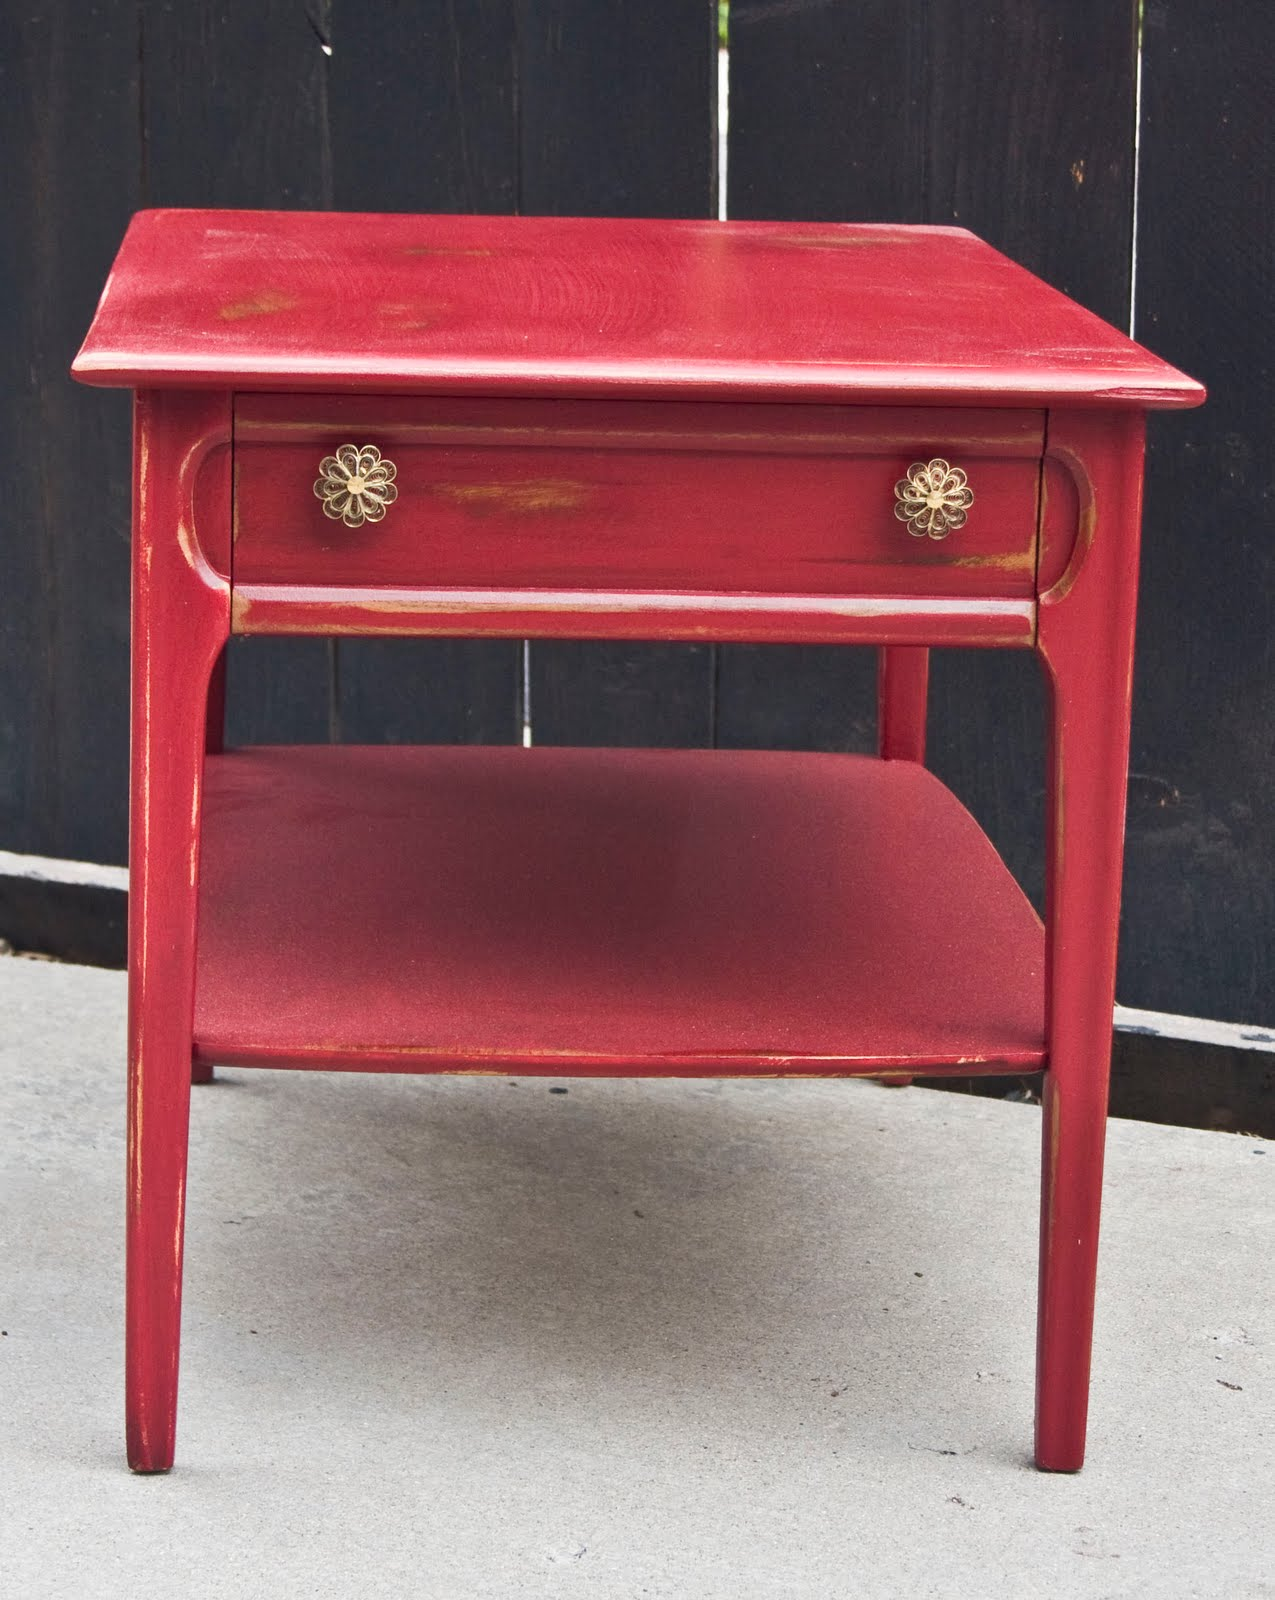 Modernly Shabby Chic Furniture Wine Red End Table Nightstand